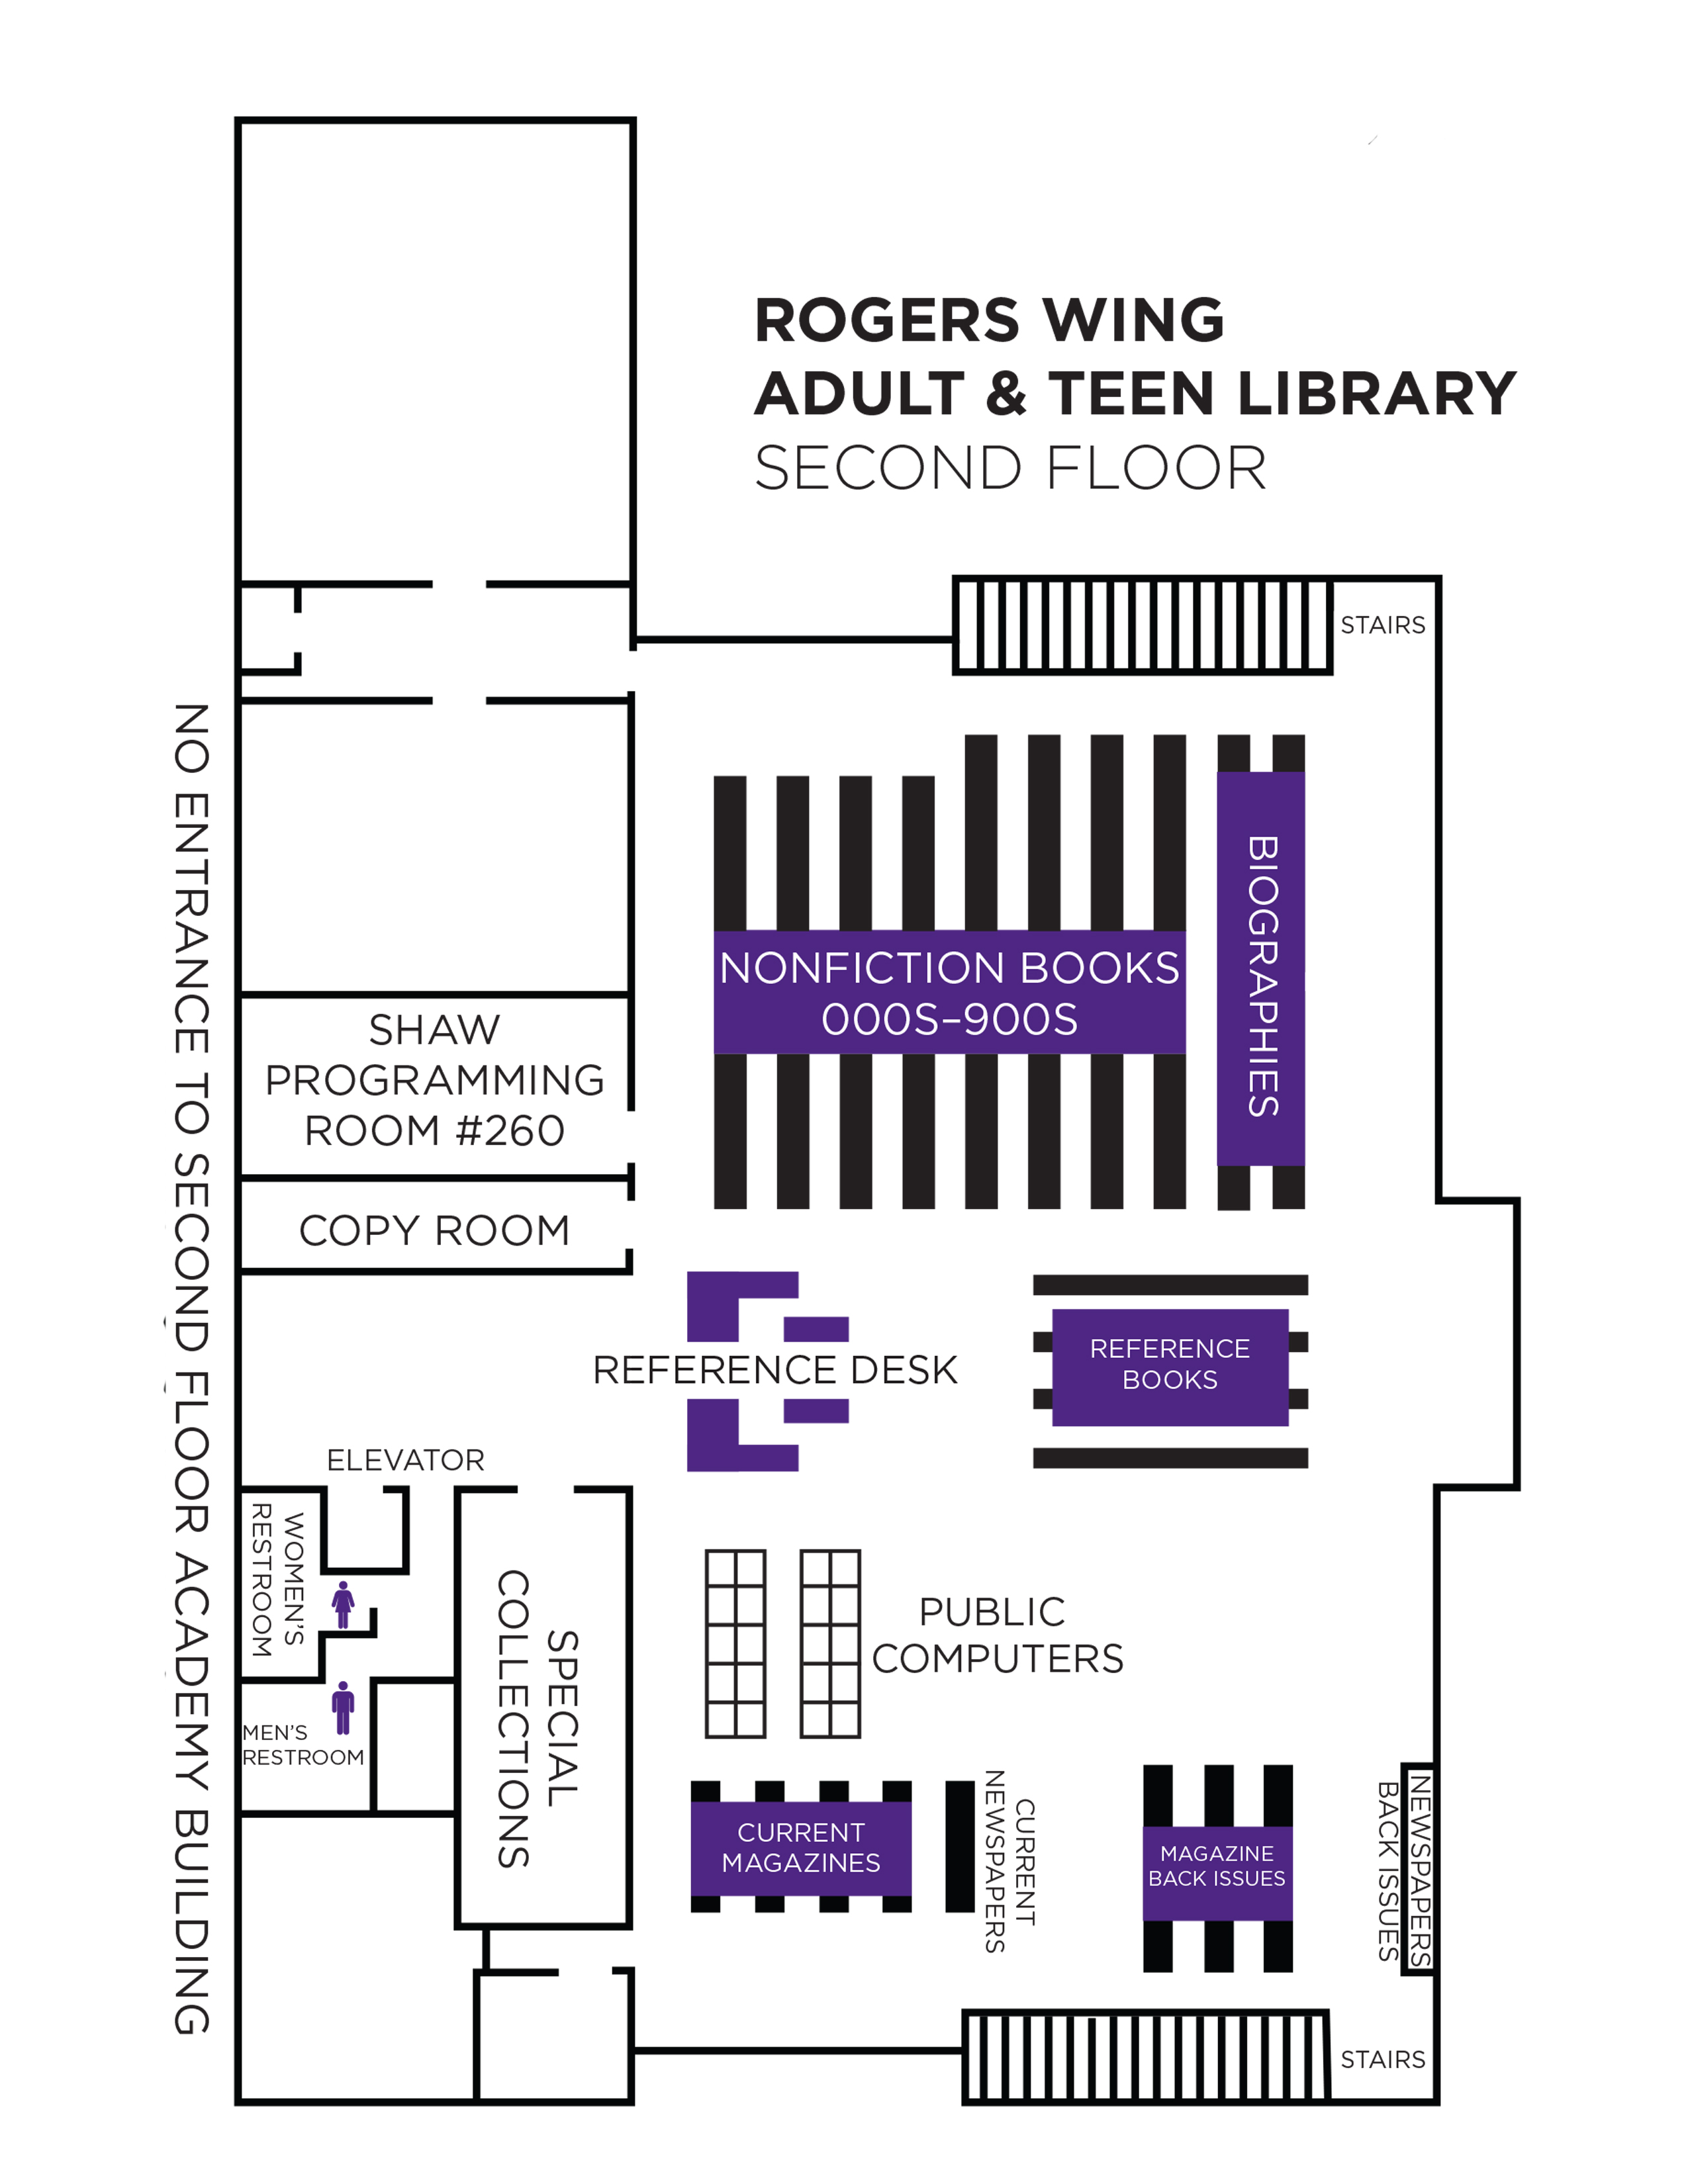 second floor rogers new wing